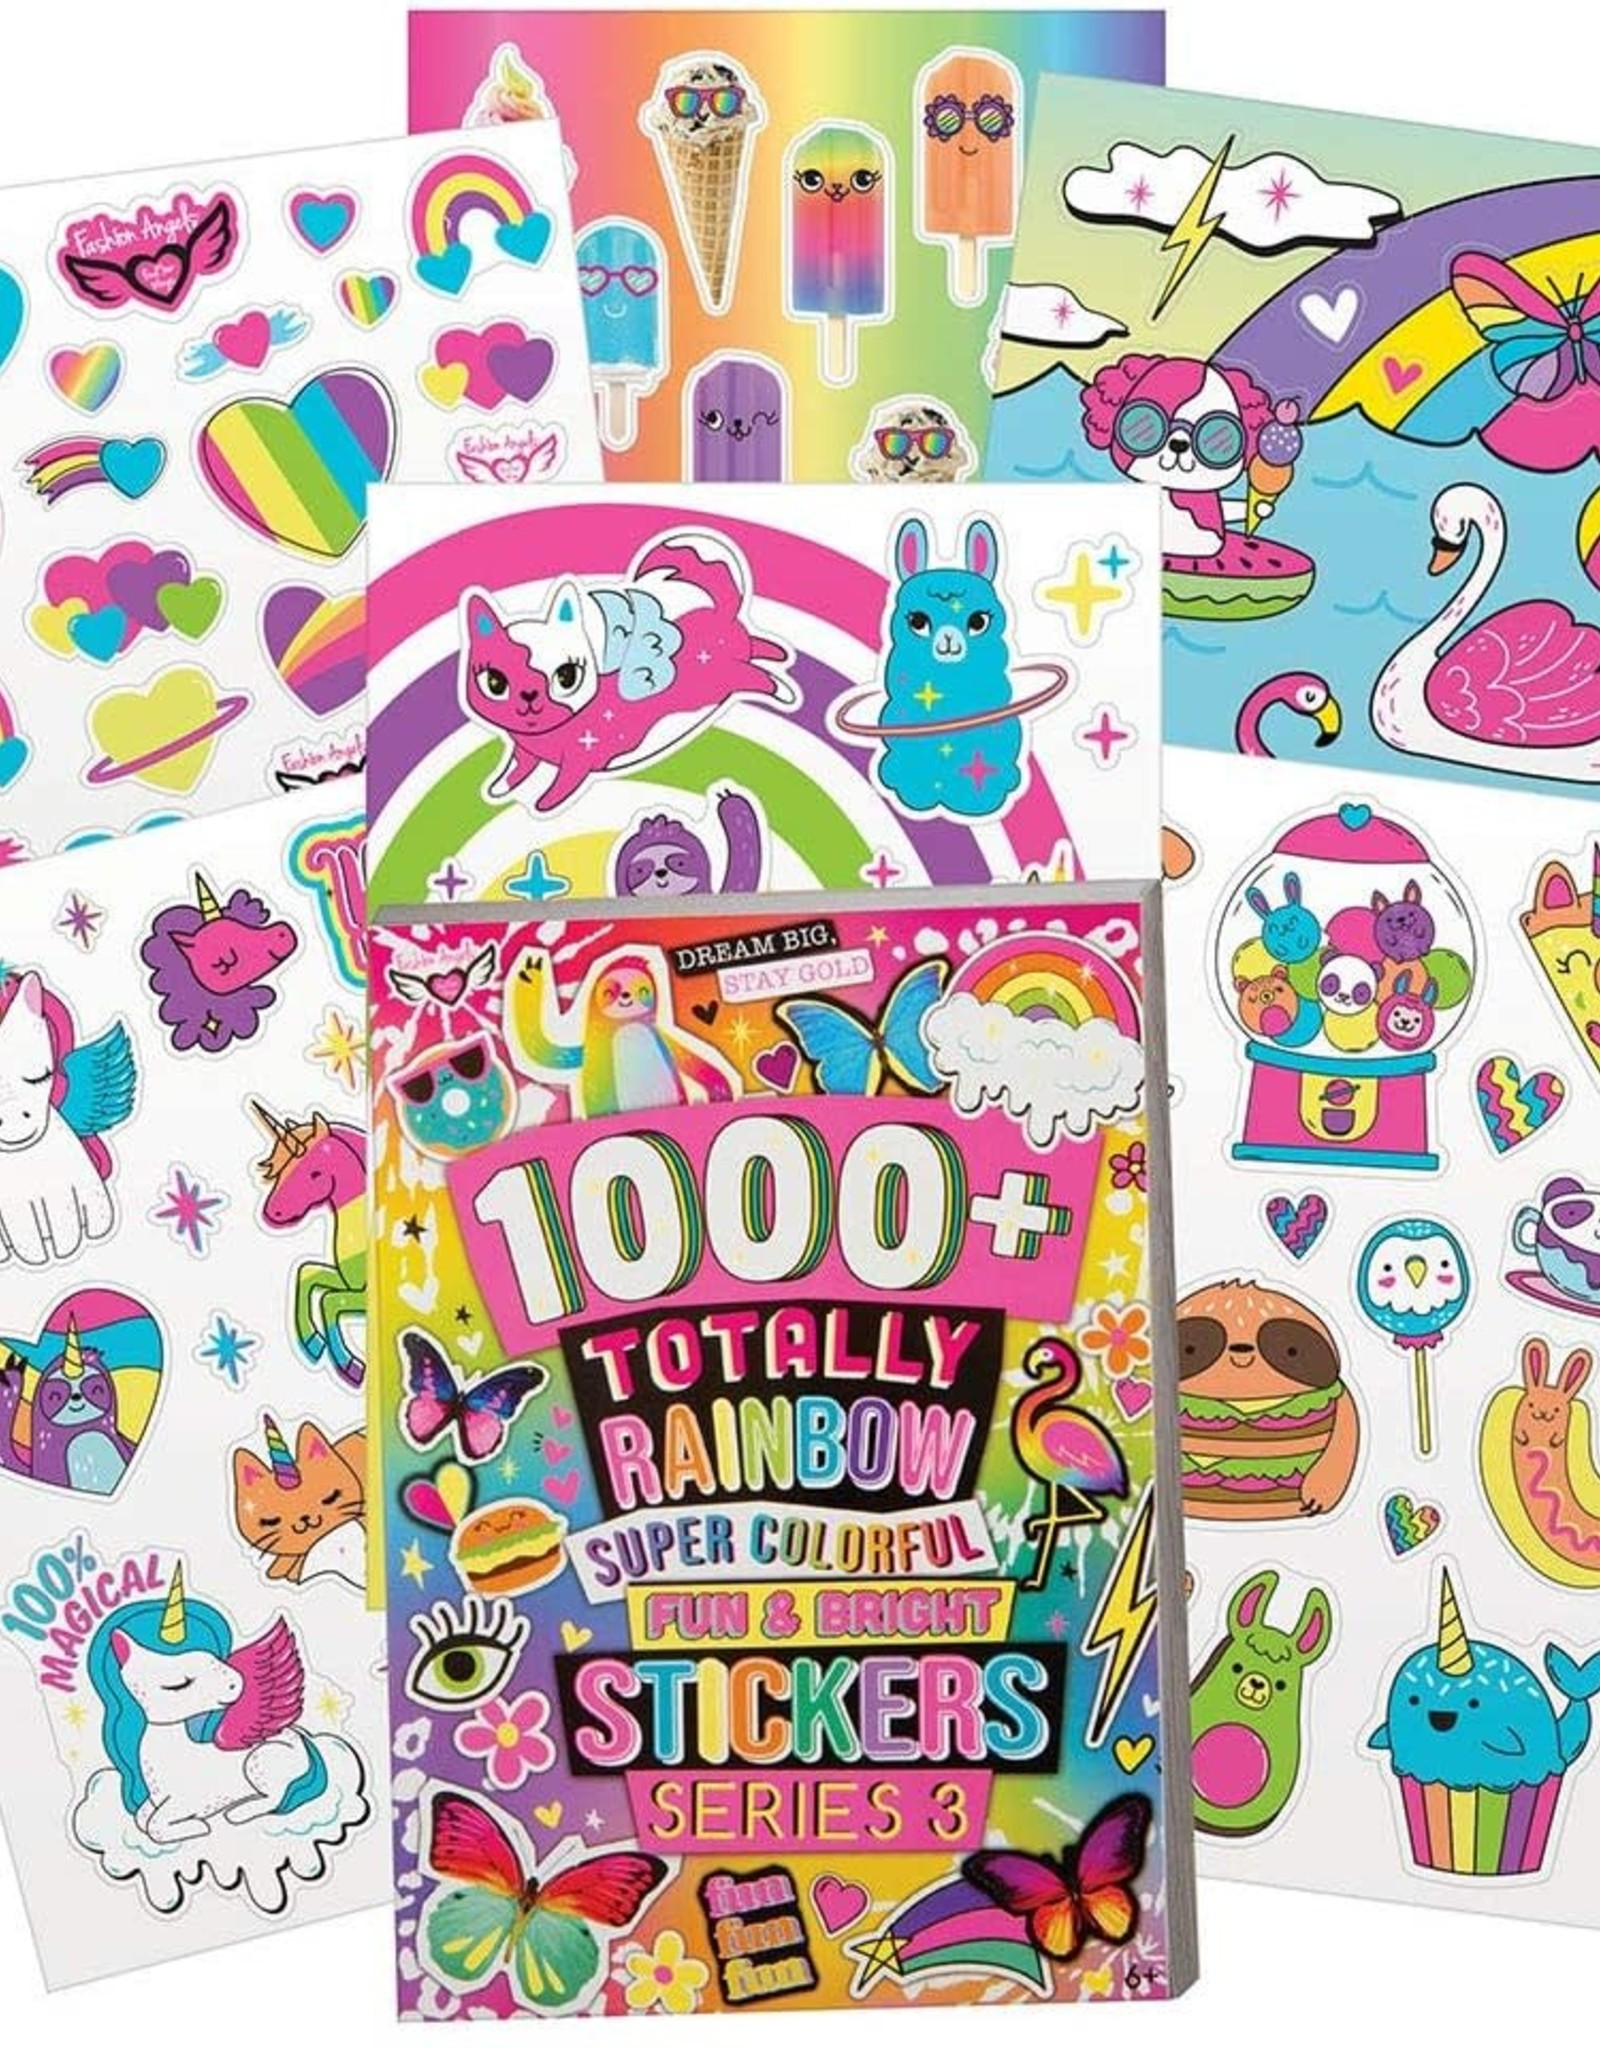 1000+ Totally Rainbow Super Colorful Stickers